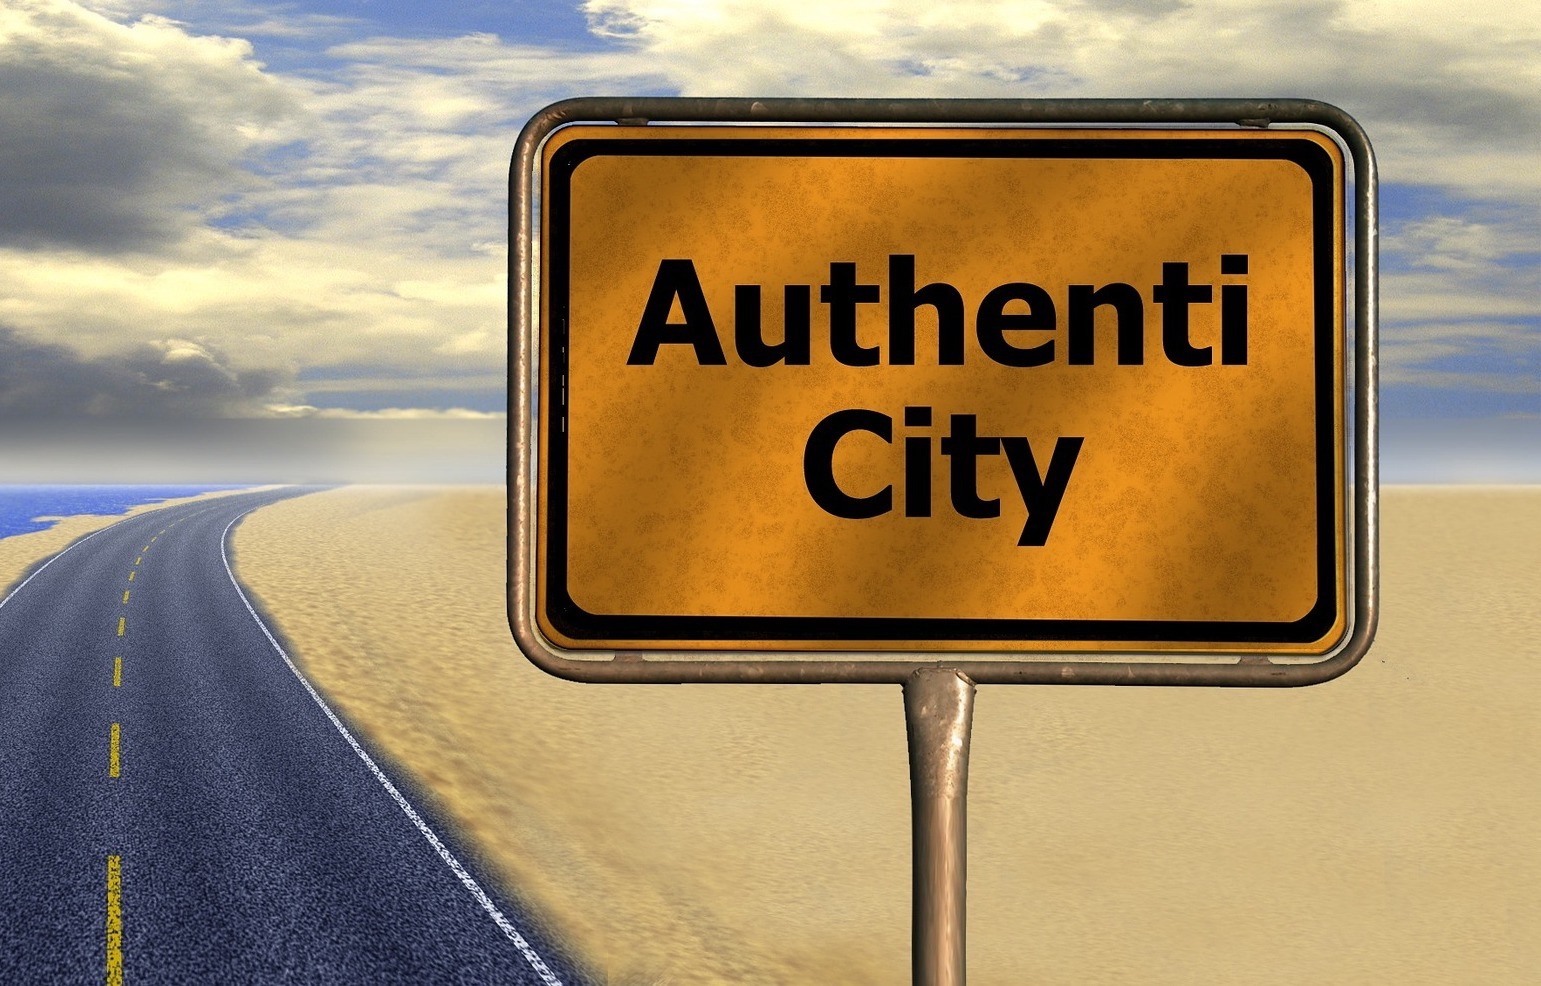 Road sign that says authenticity